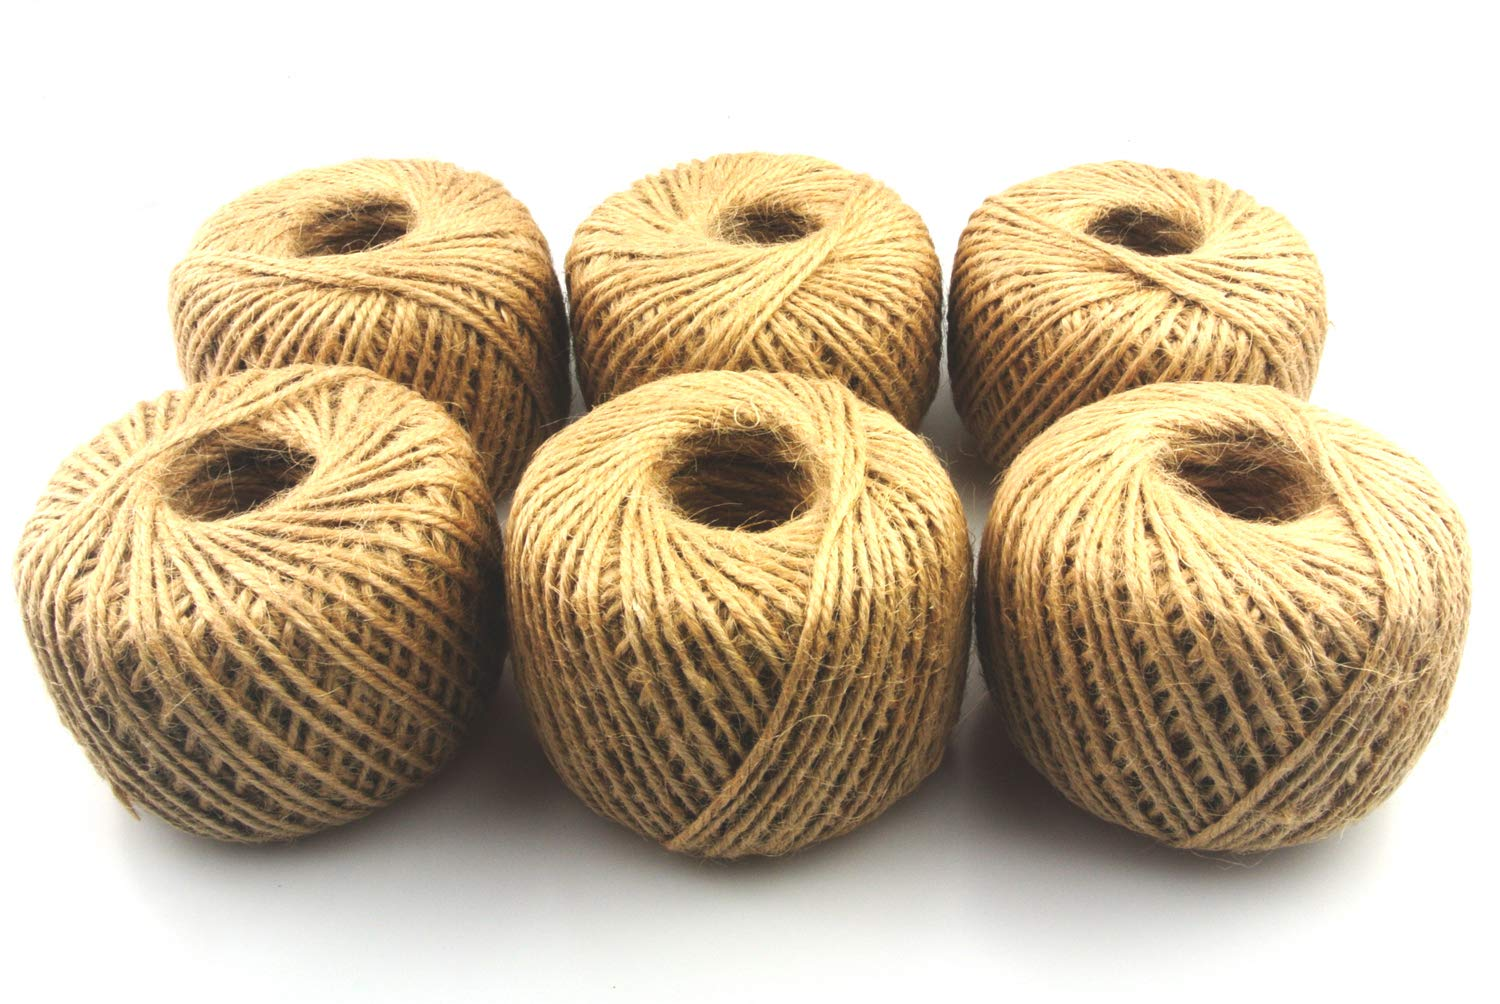 Maydahui 1968 Feet Natural Jute Twine Ball (Pack of 6) - for Arts Crafts Gift Rope Durable String for Packing Materials,Gardening Applications,DIY Crafts, Decoration, Embellishments